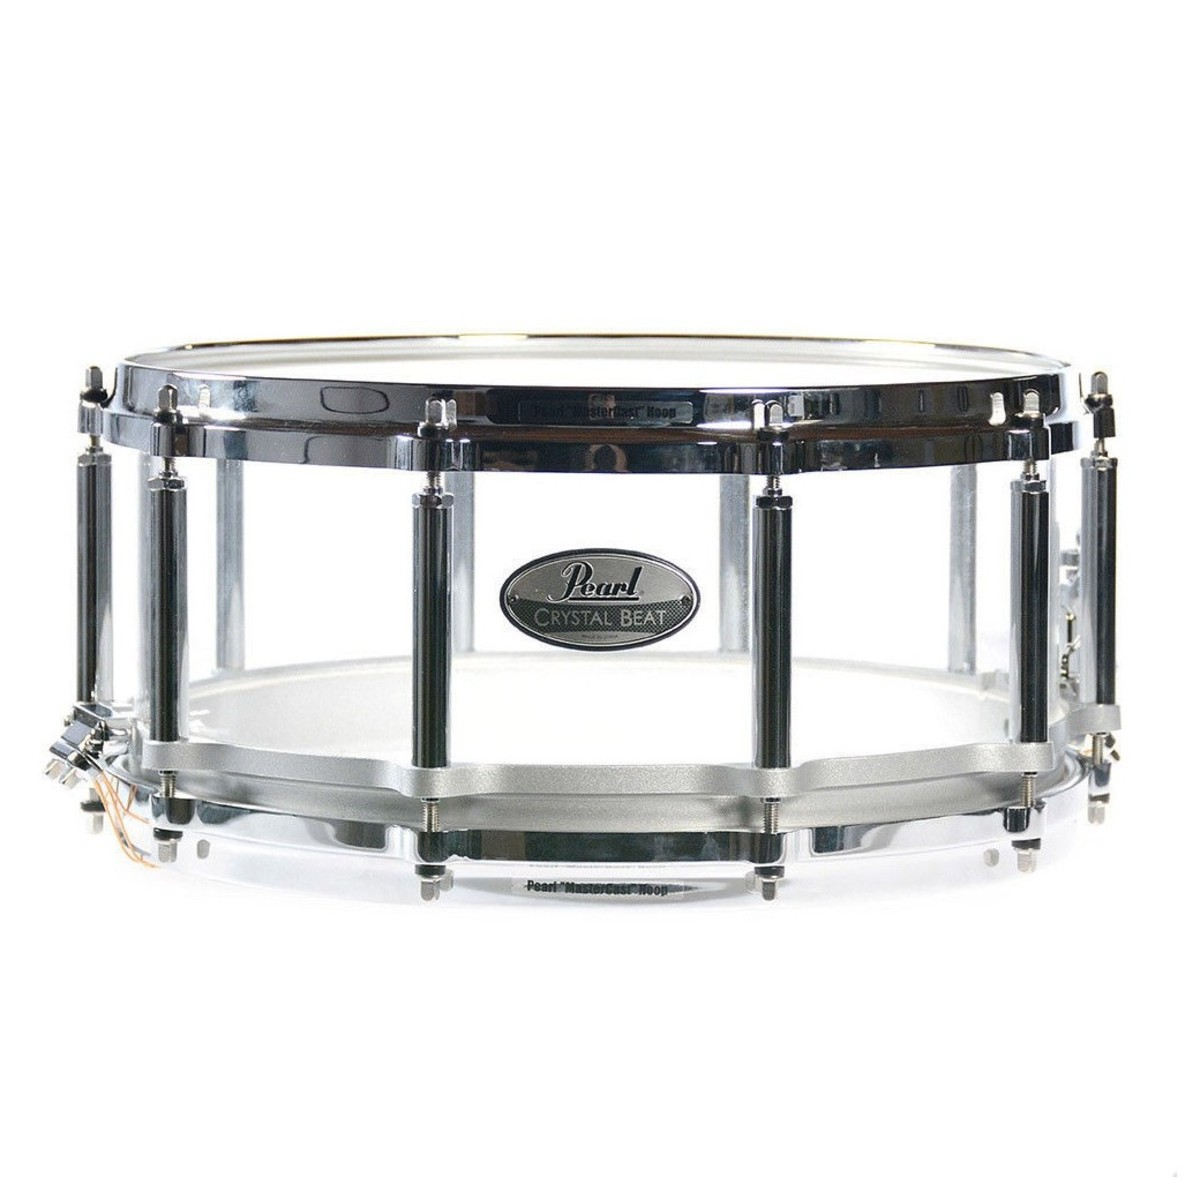 Pearl Crystal Beat 14x5 Acrylic Free Floating Snare Drum, Ultra ...